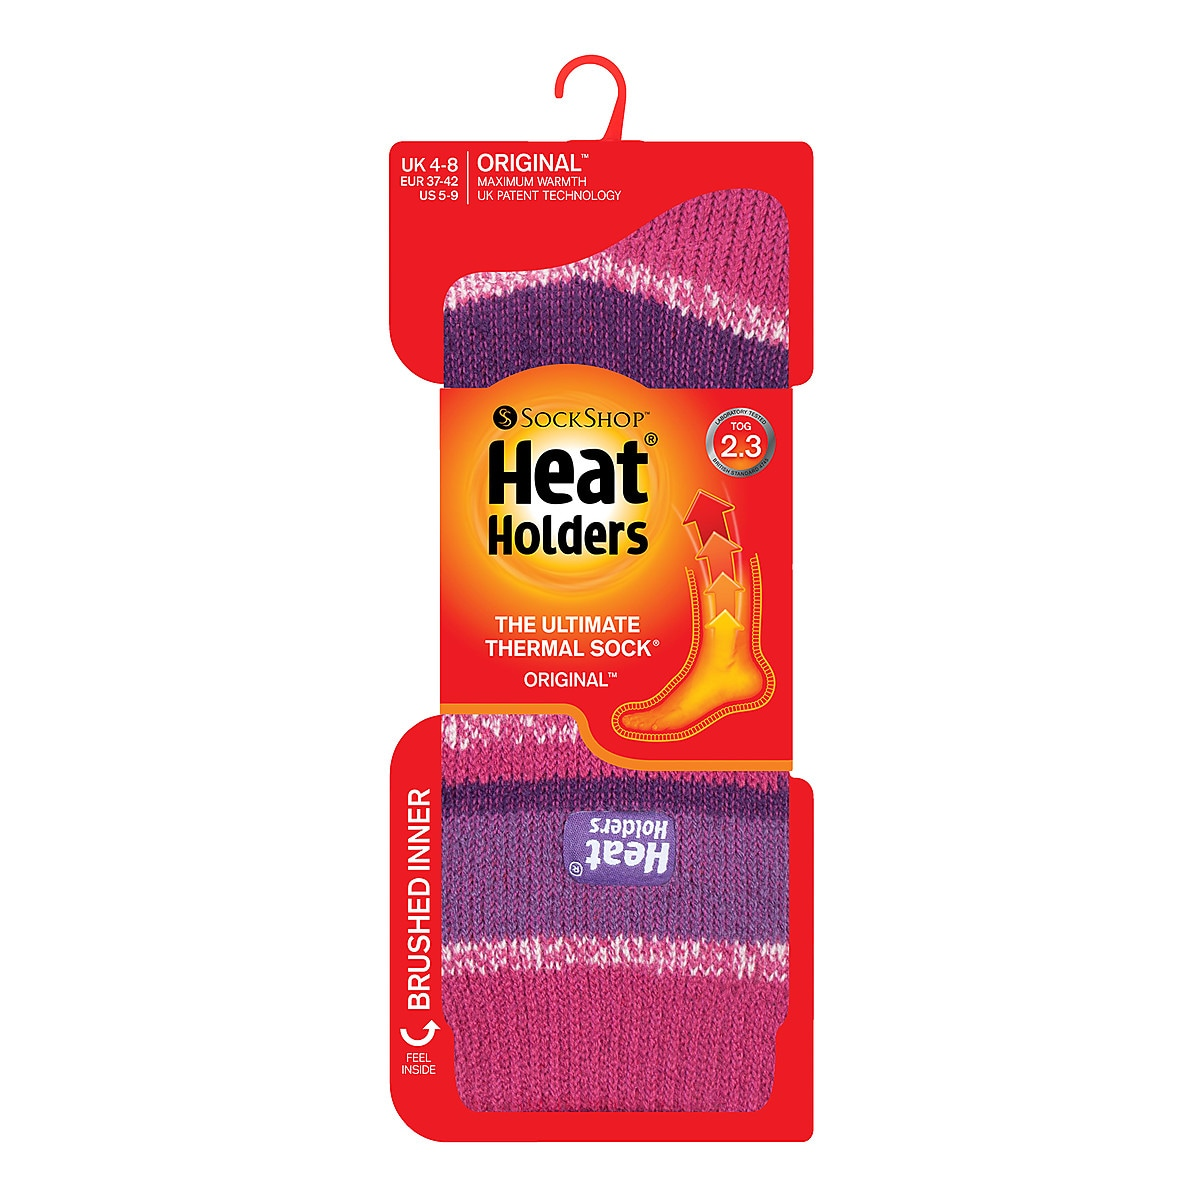 Heat Holders Thermal Socks, size 37-42